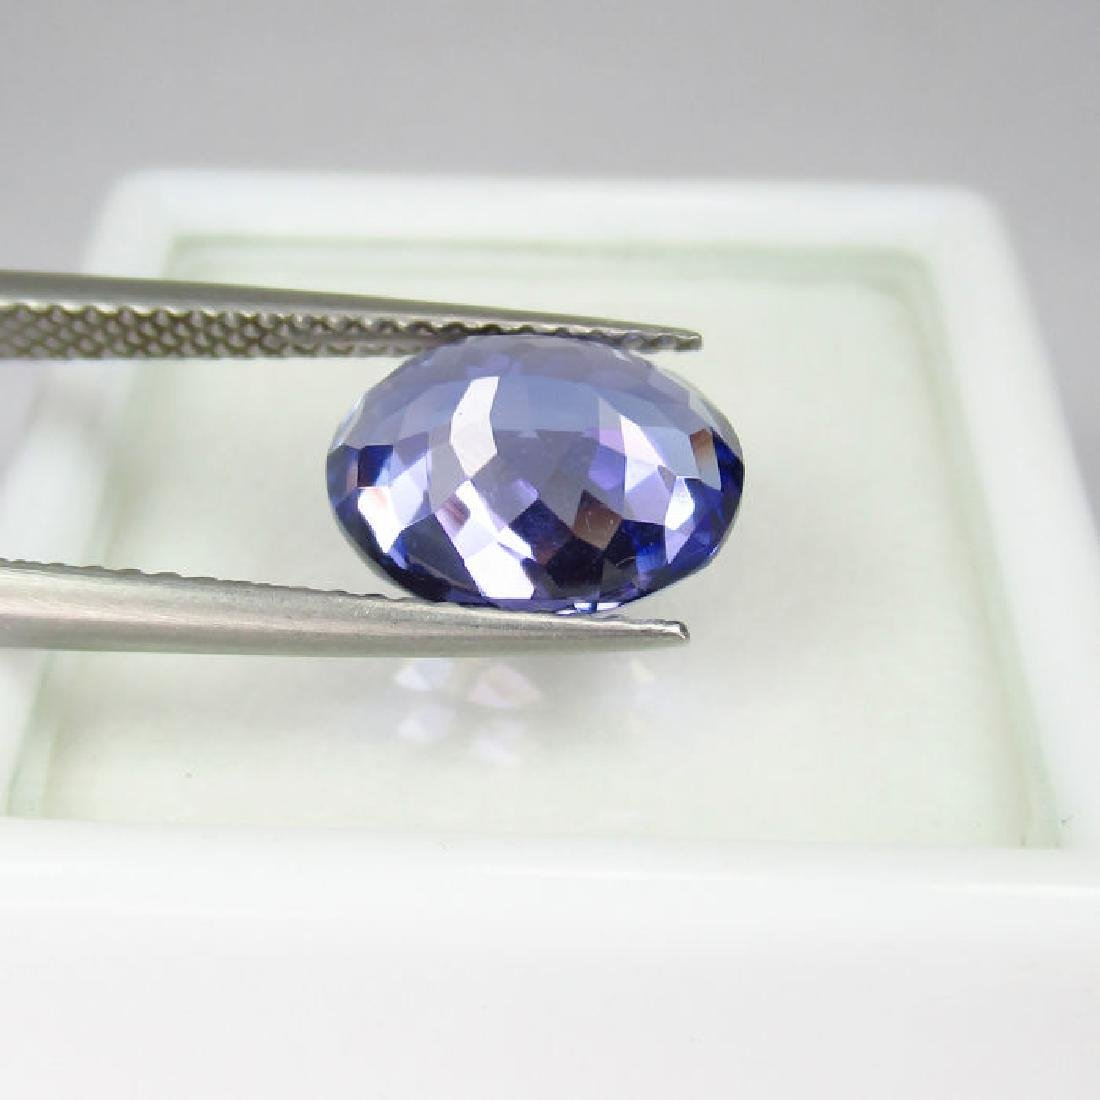 3.05 Ctw  IGI Certified Natural Loose Oval Tanzanite - 4